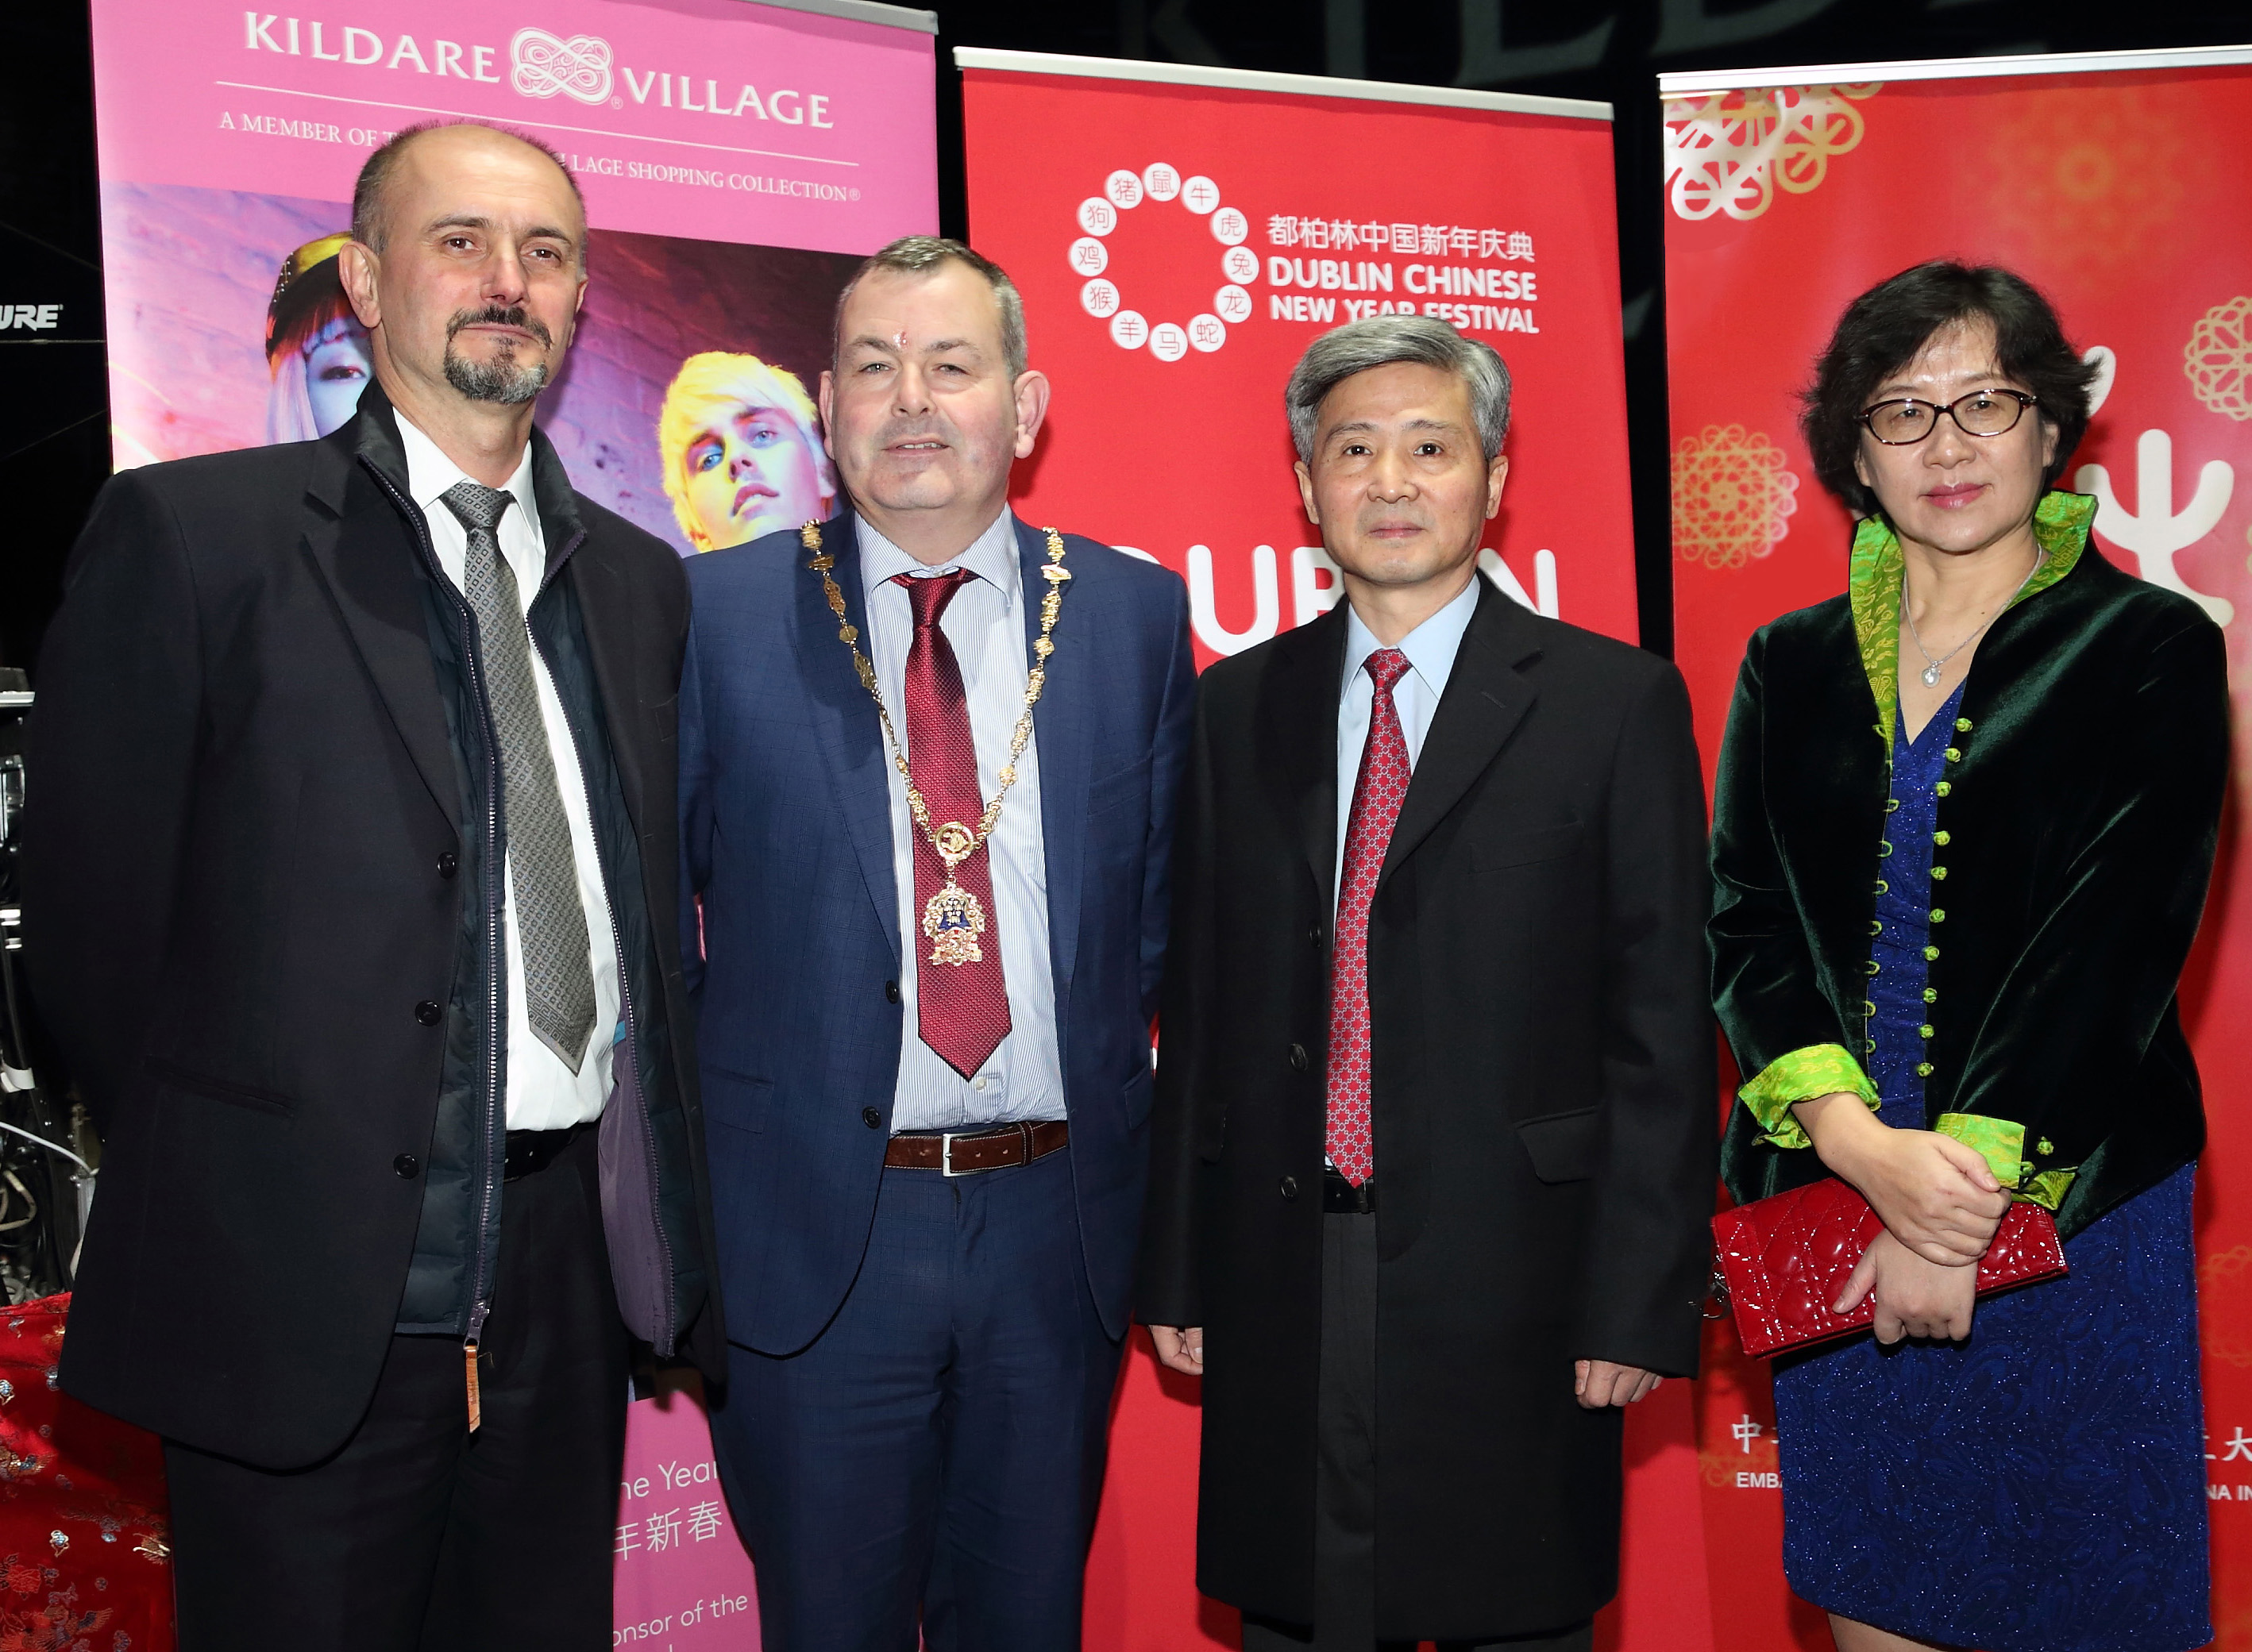 Business Director for Kildare Village Rene Frion, Deputy Lord Mayor of Dublin Tom Brabazon, the Ambassador of the People's Republic of China in Ireland He Xiangdong and his wife Xia Lining  at the opening ceremony of Dublin Chinese New Year Festival 2020 which runs from 24th January - 10th February and celebrates the Year of the Rat.  Pic: Brian McEvoy Photography